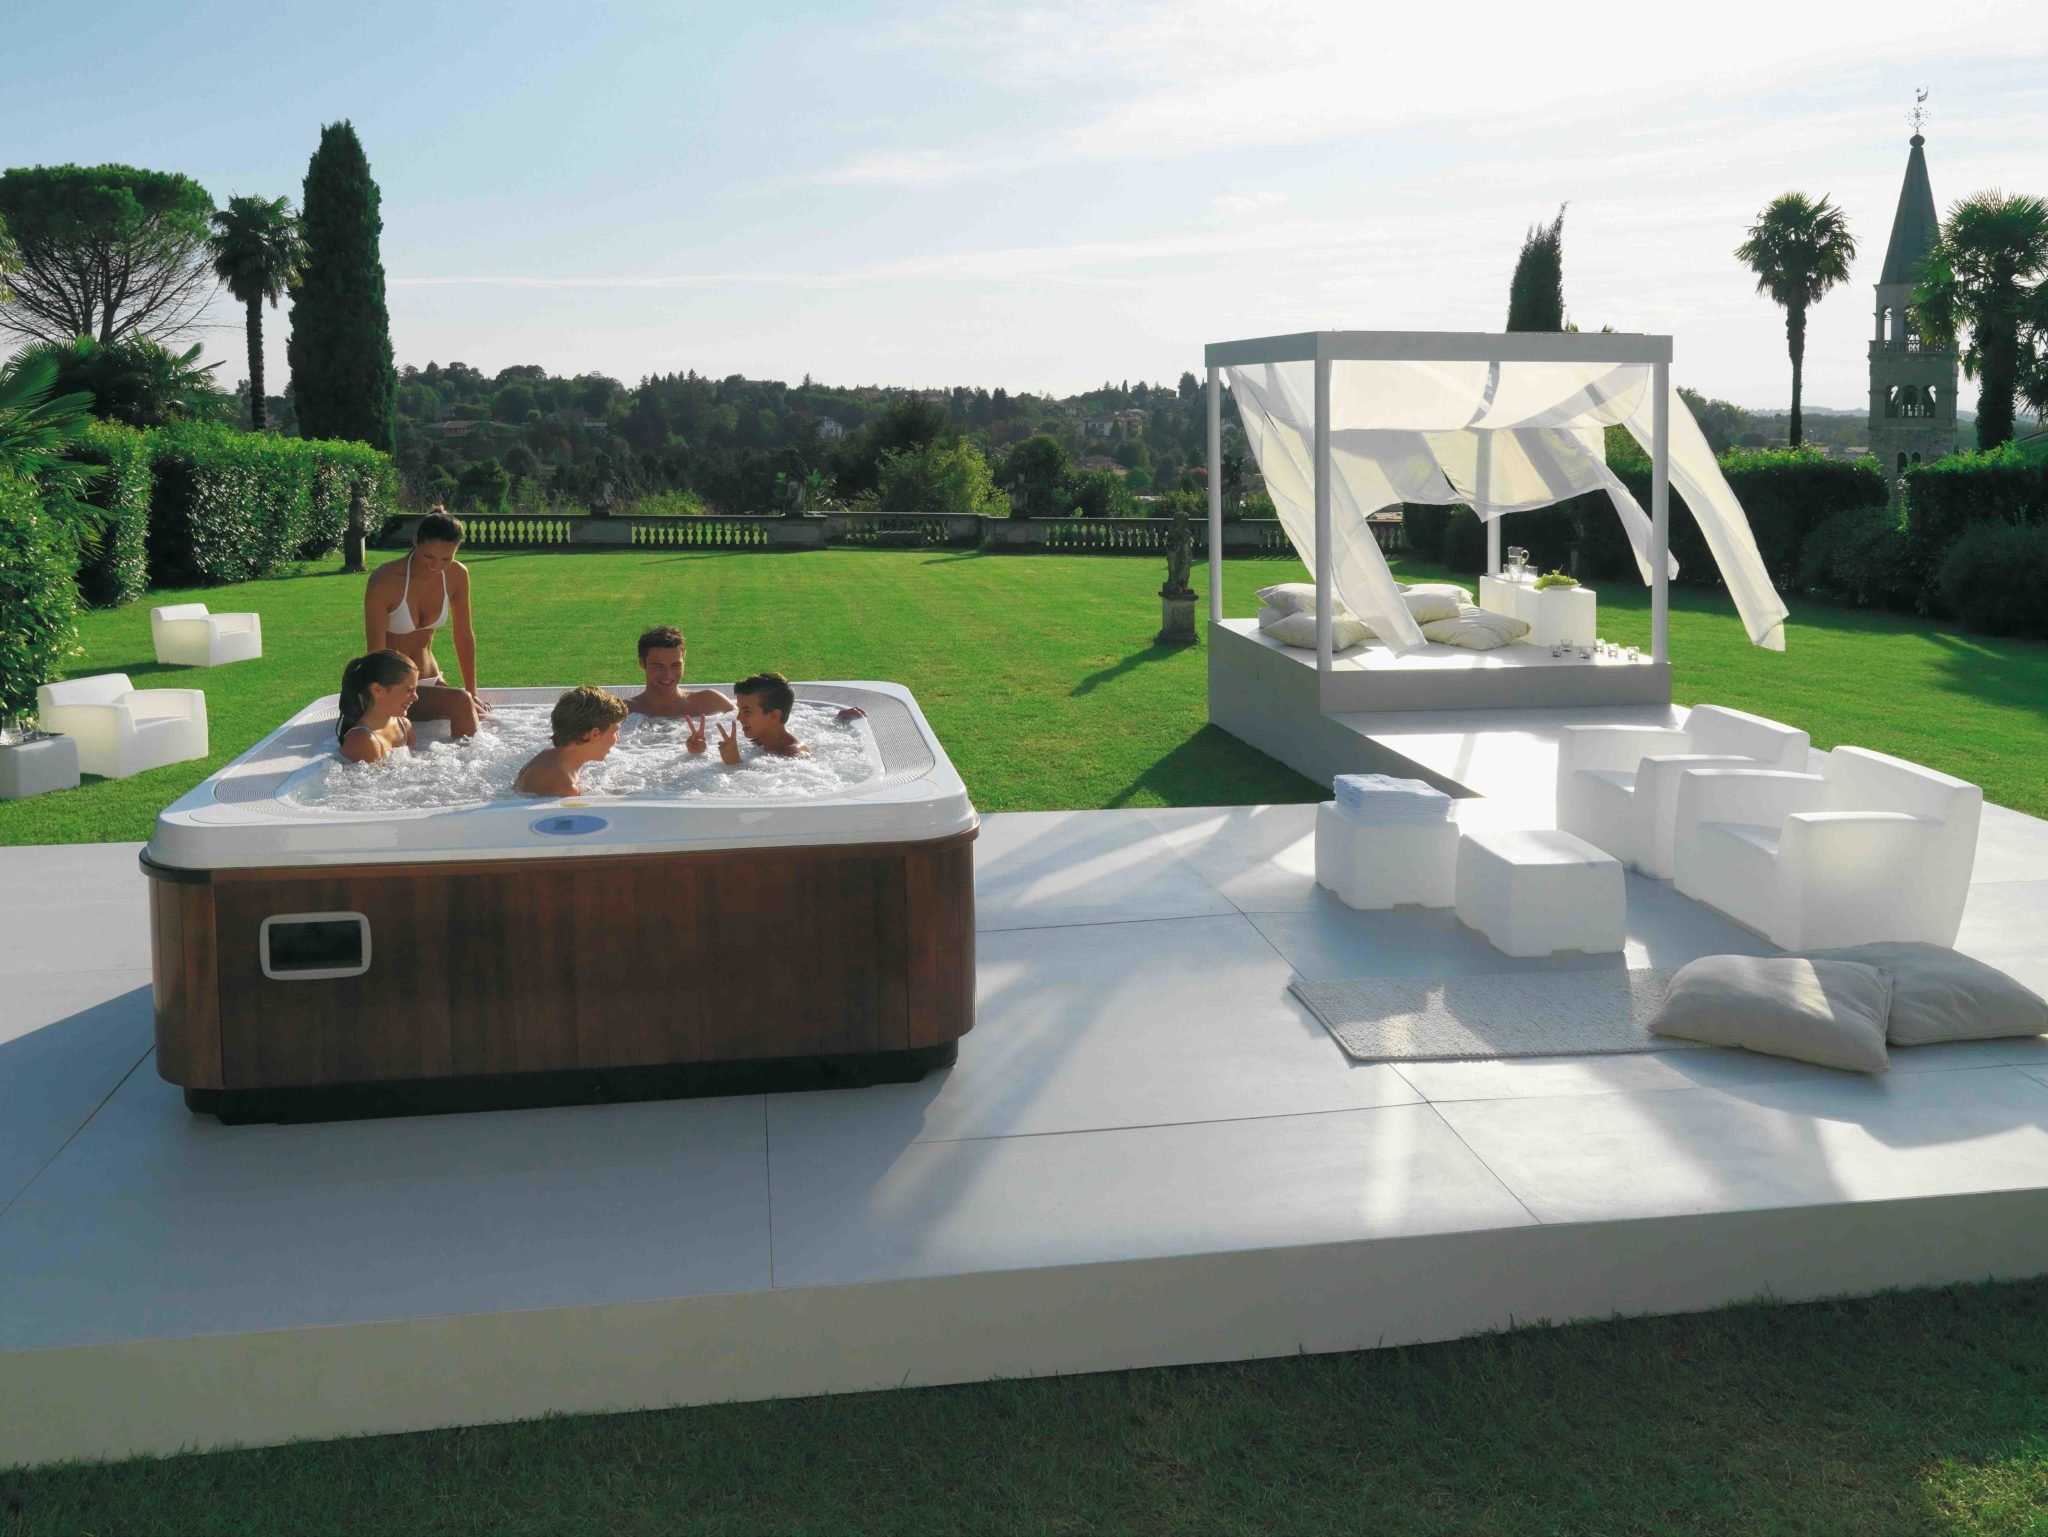 Profile Jacuzzi 5 places CultureSpas